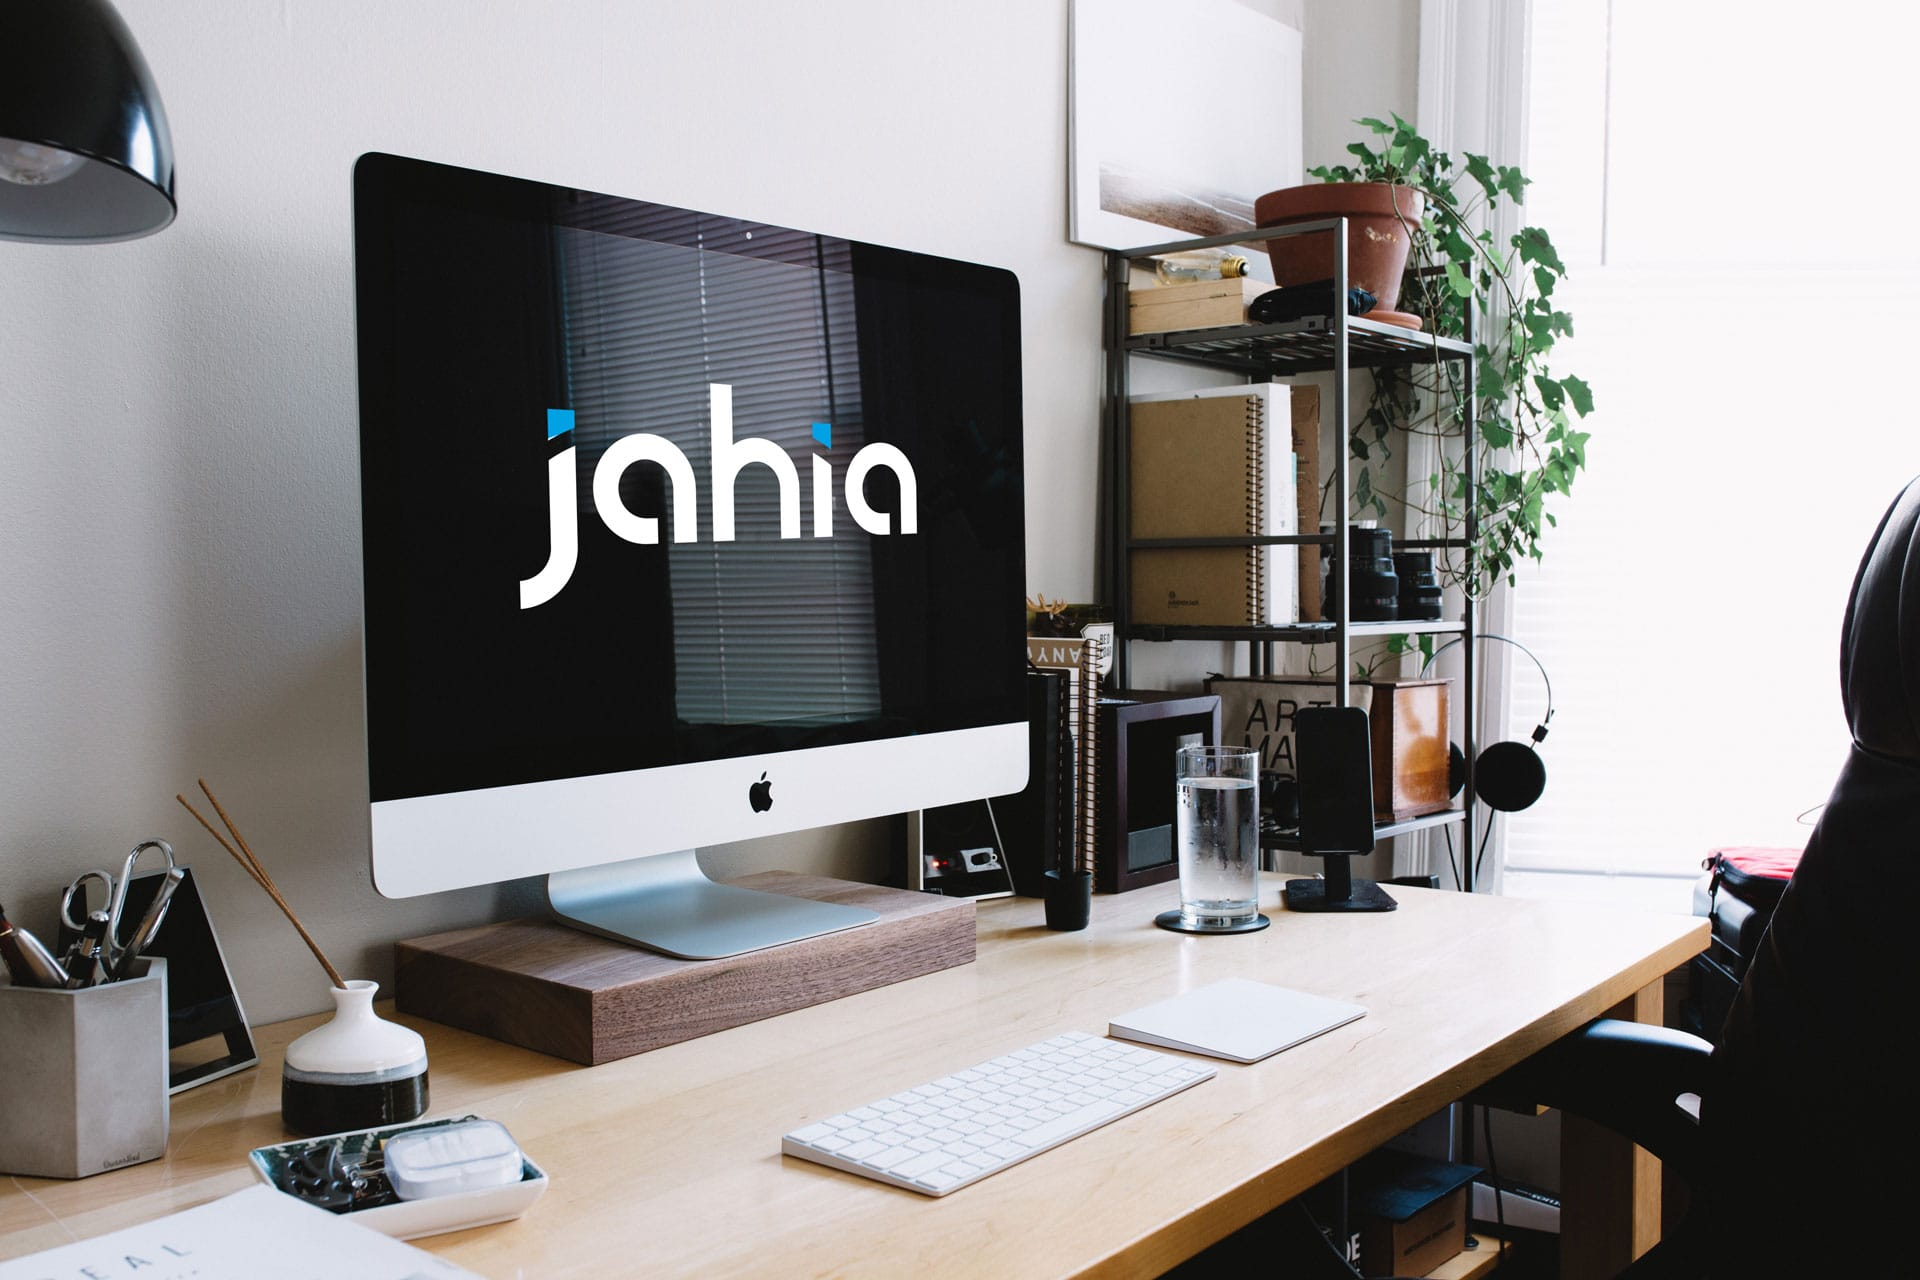 jahia-screen.jpg